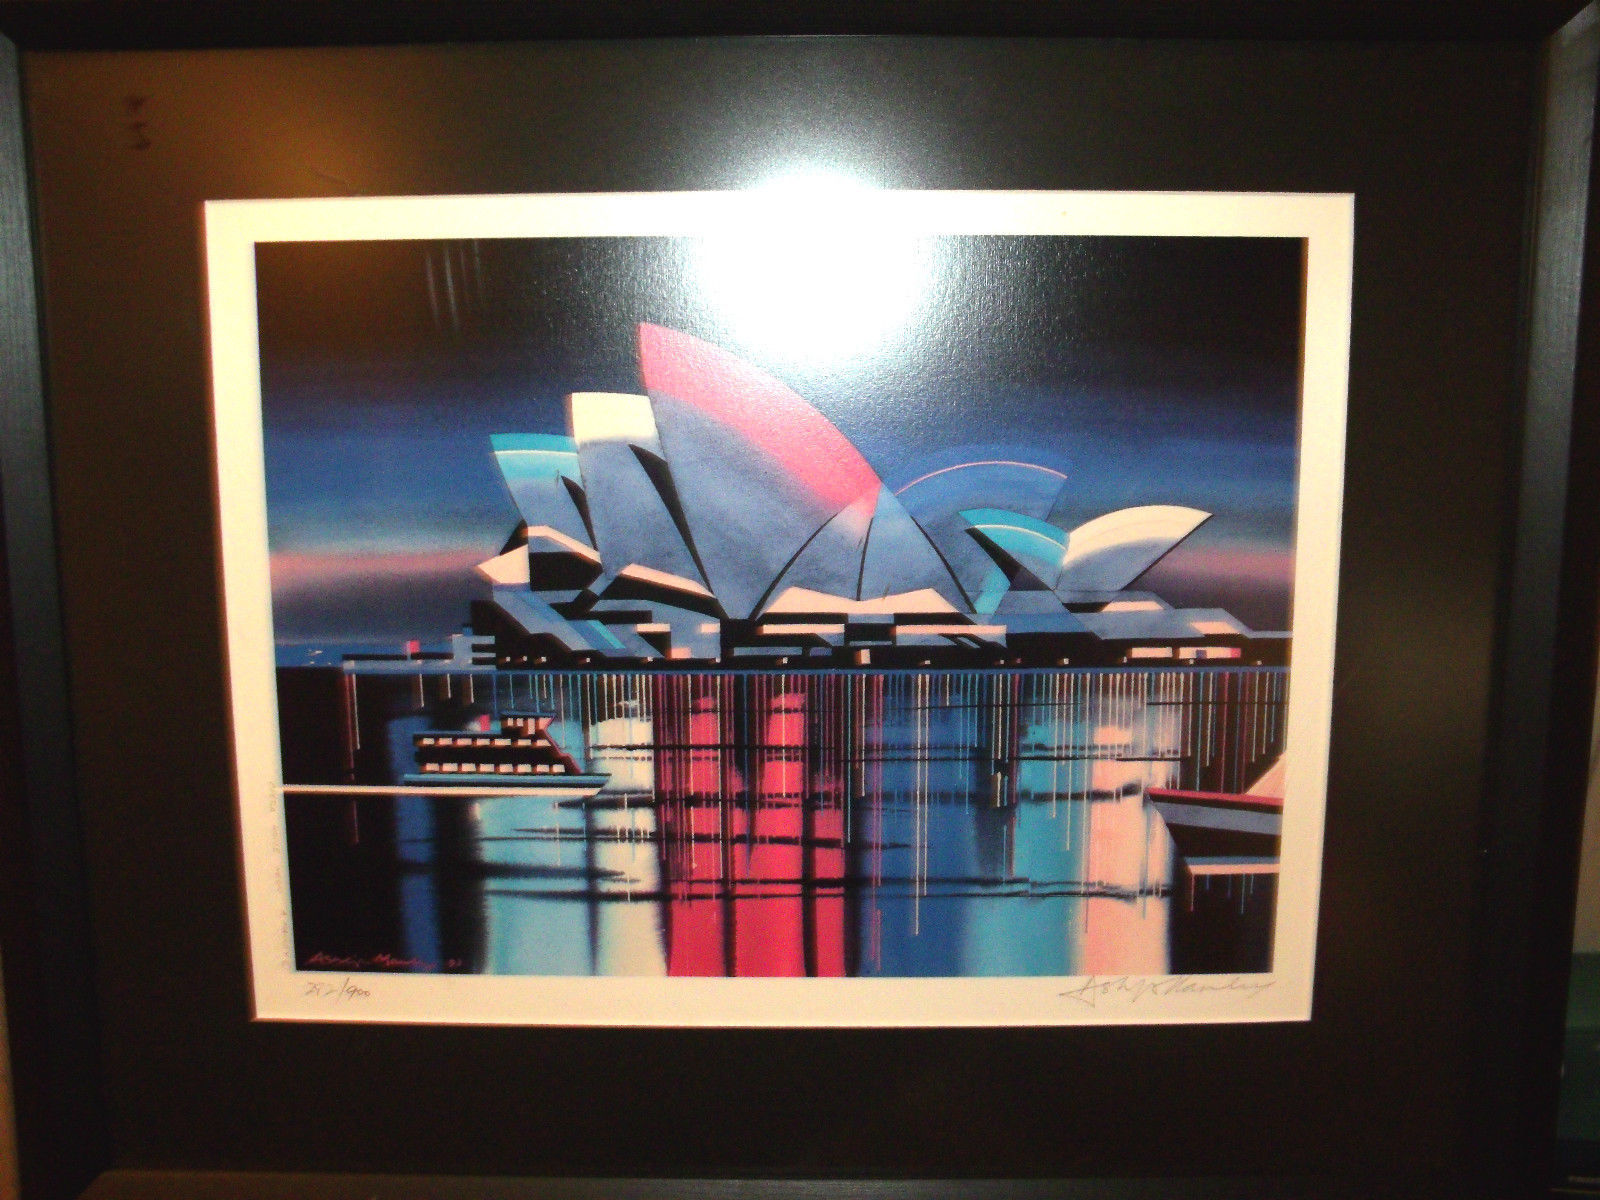 OPERA HOUSE NEON BY ASHLEIGH MANLEY LIMITED EDITION LITHOGRAPH FRAMED 18.5X22.5